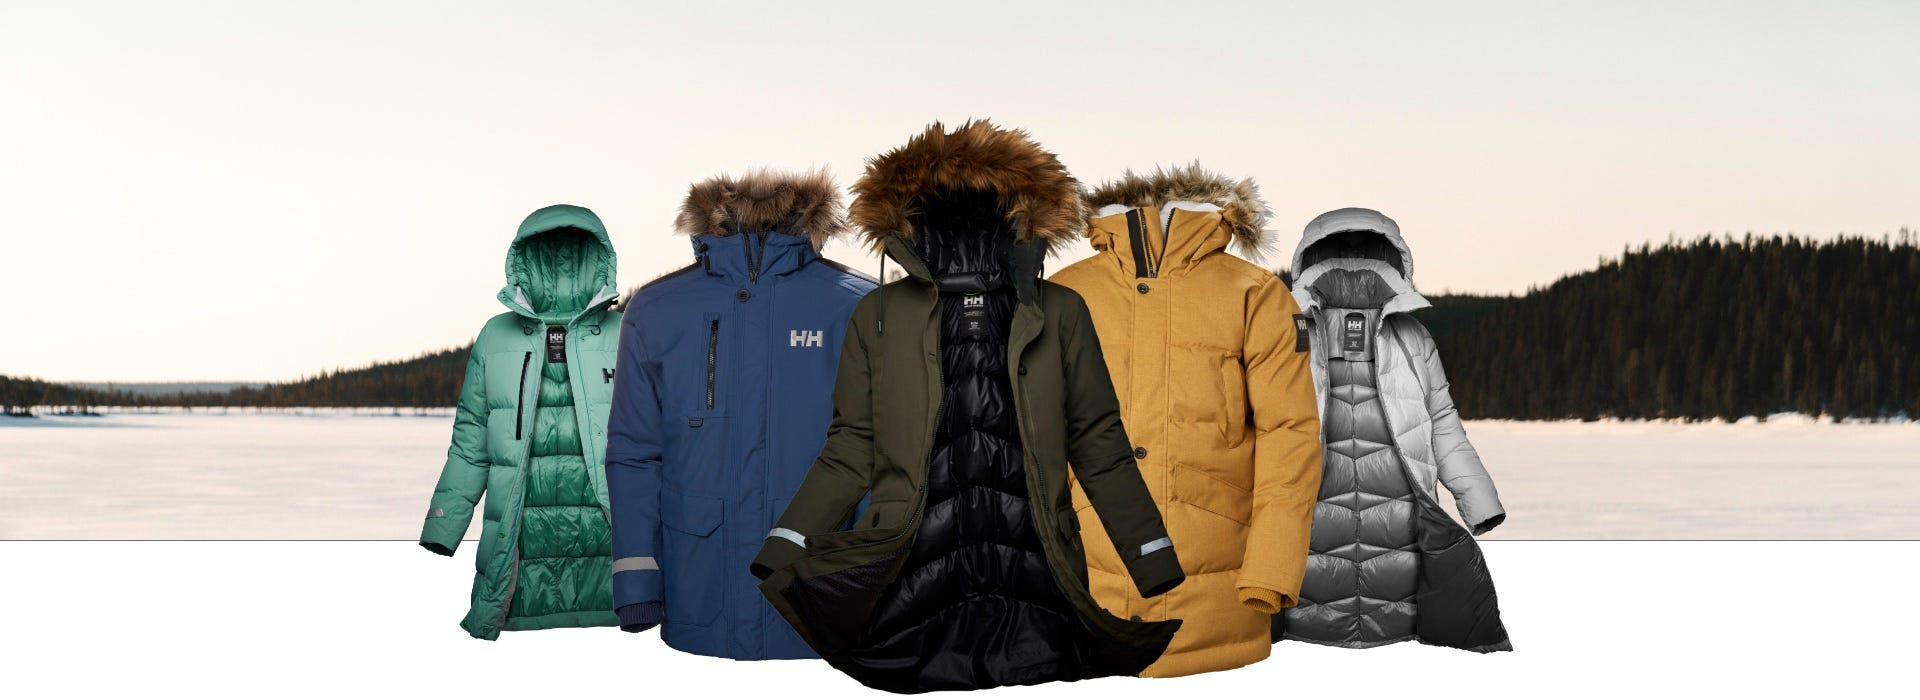 A variety of parkas displayed on a winter outdoor backdrop